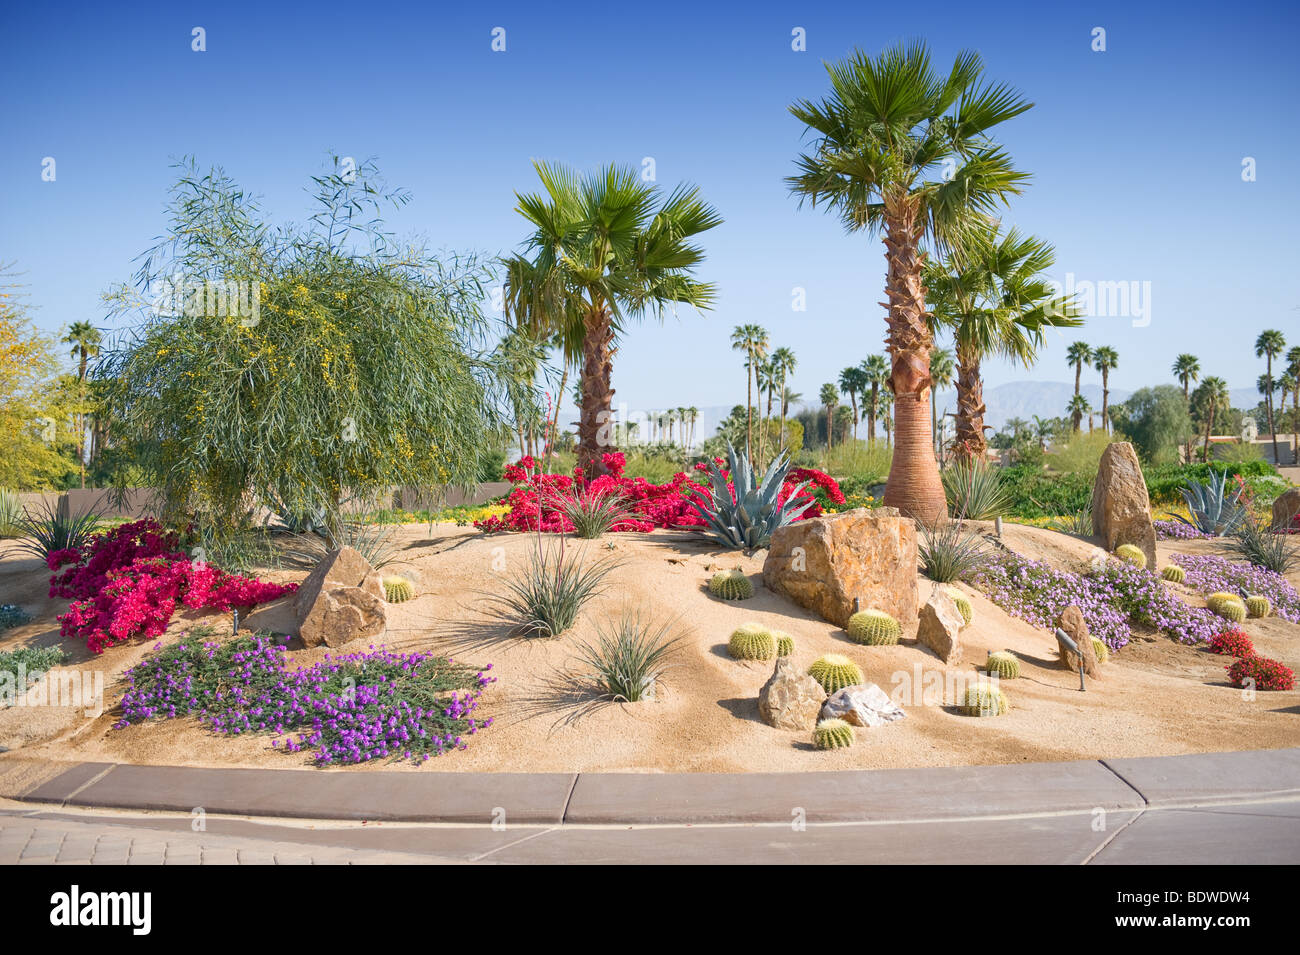 desert landscaping shown with plants and palm trees stock photo